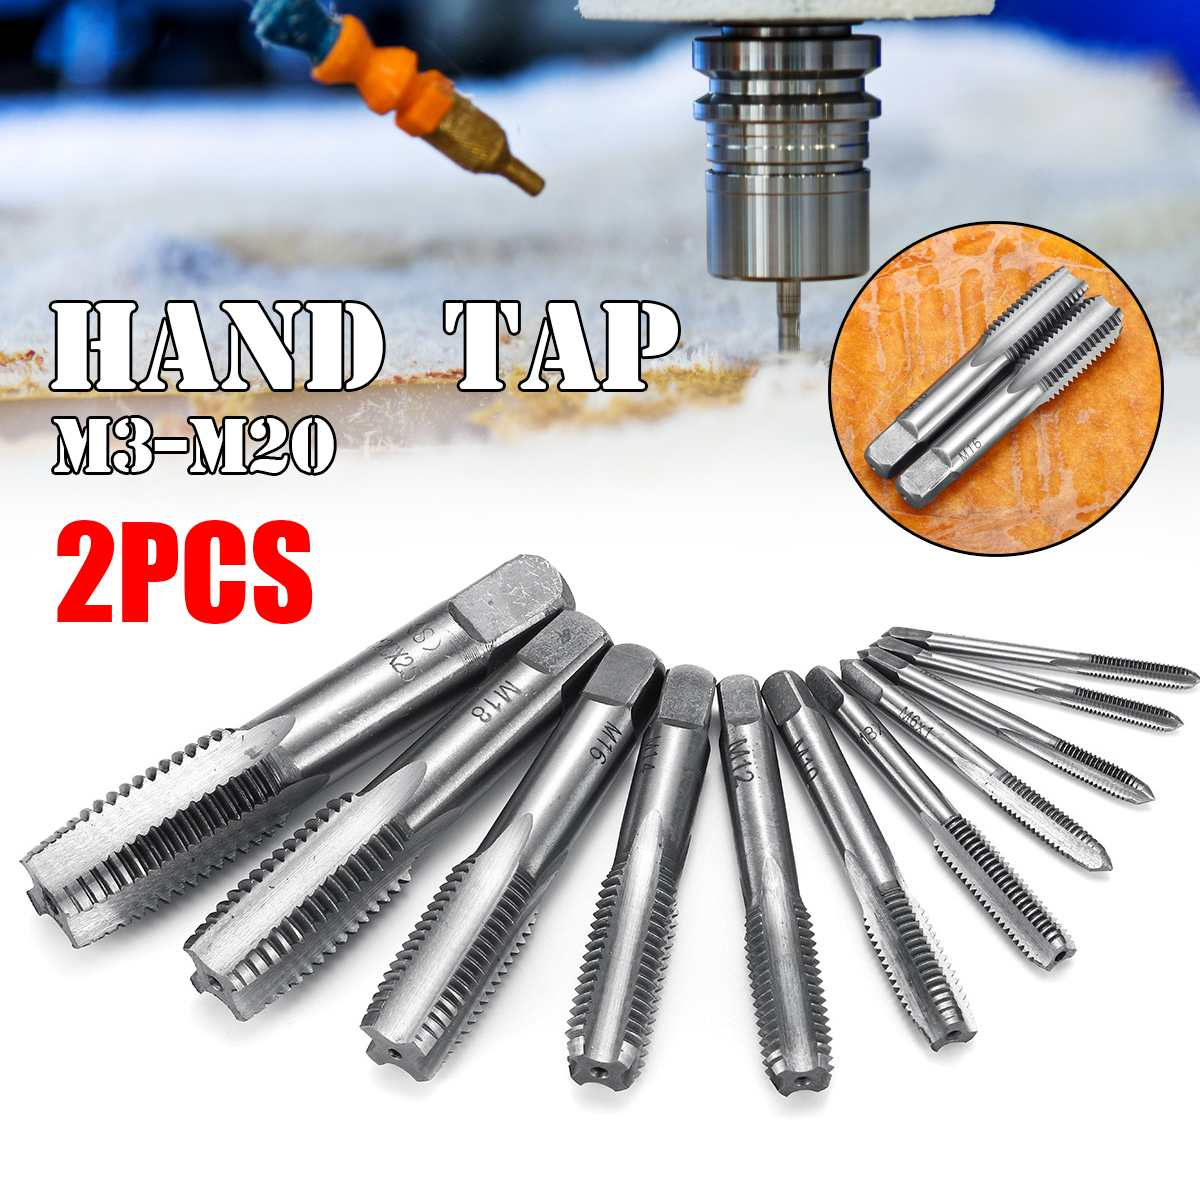 2PCS M3 M4 M5 M6 M8 M10 M12 M14 M16 M18 M20 HSS Metric Hand Tap Drill Set Plug And Bottoming Hand Straight Thread Tap Tools